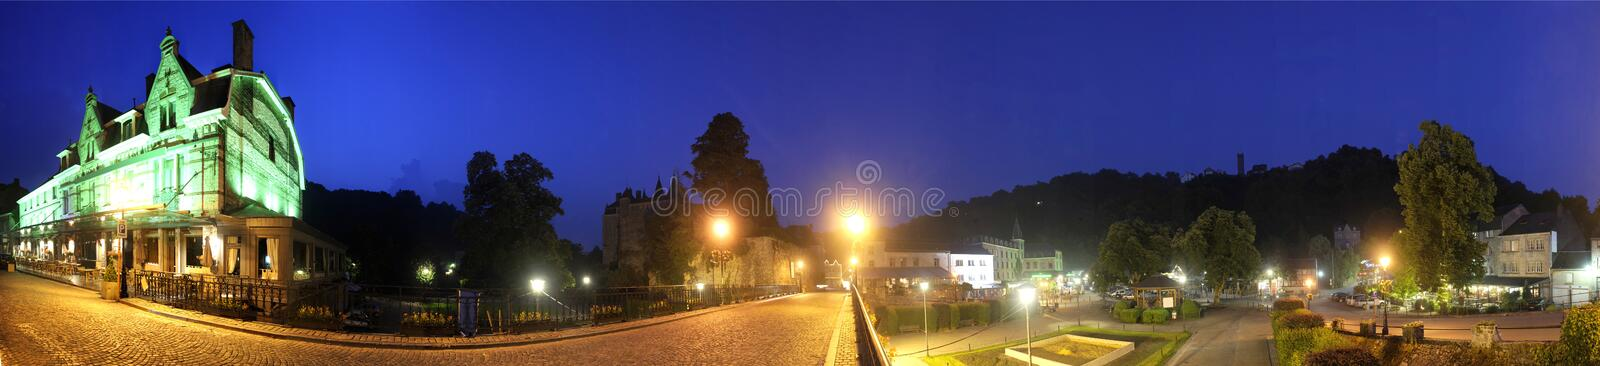 Durbuy By Night Royalty Free Stock Photos